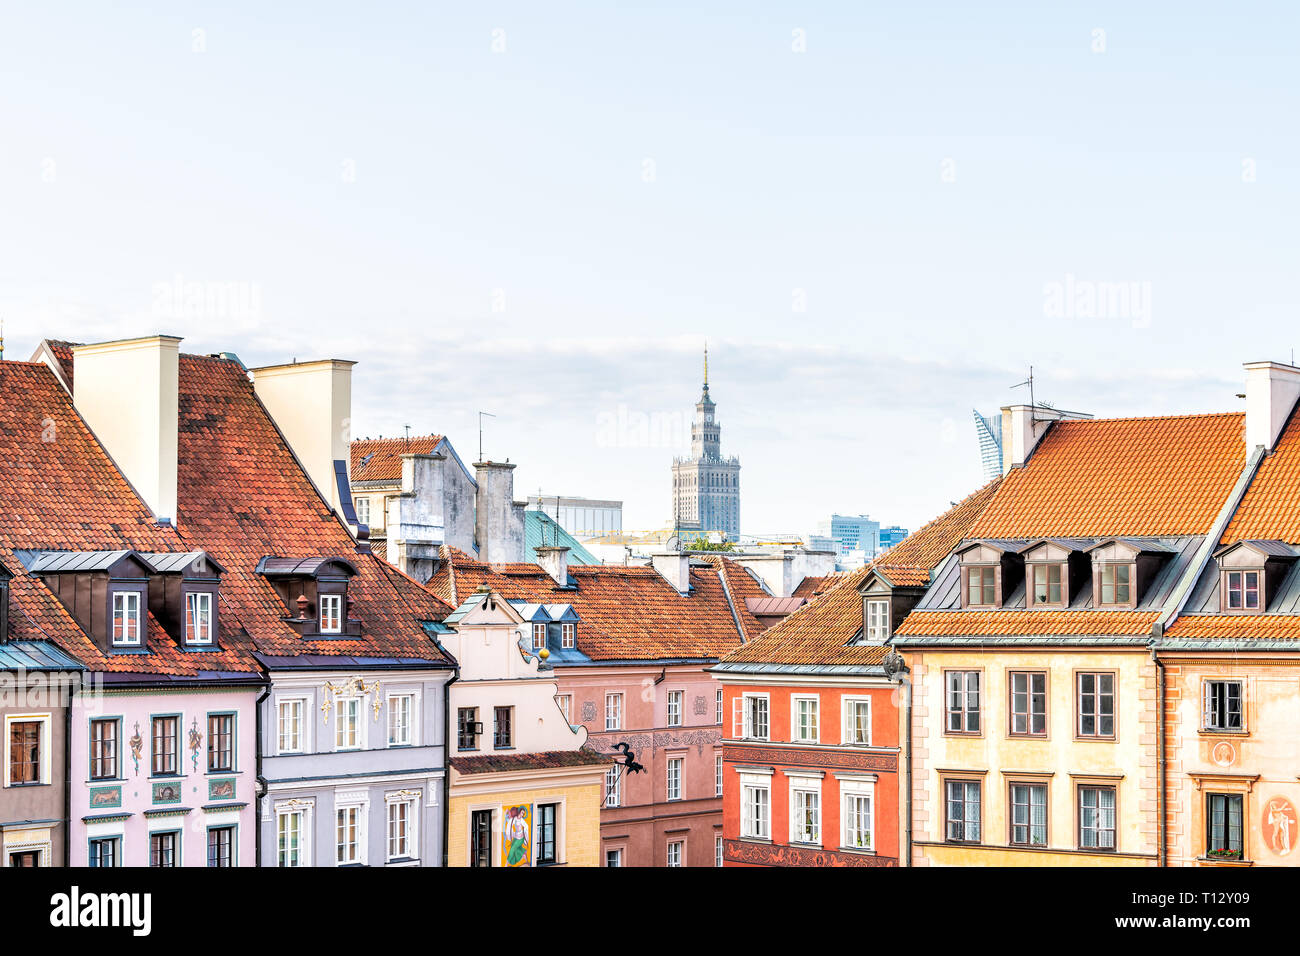 Warsaw, Poland - August 22, 2018: Downtown cityscape with Palace of Culture and Sciences building skyscraper and multicolored old town rooftop houses Stock Photo